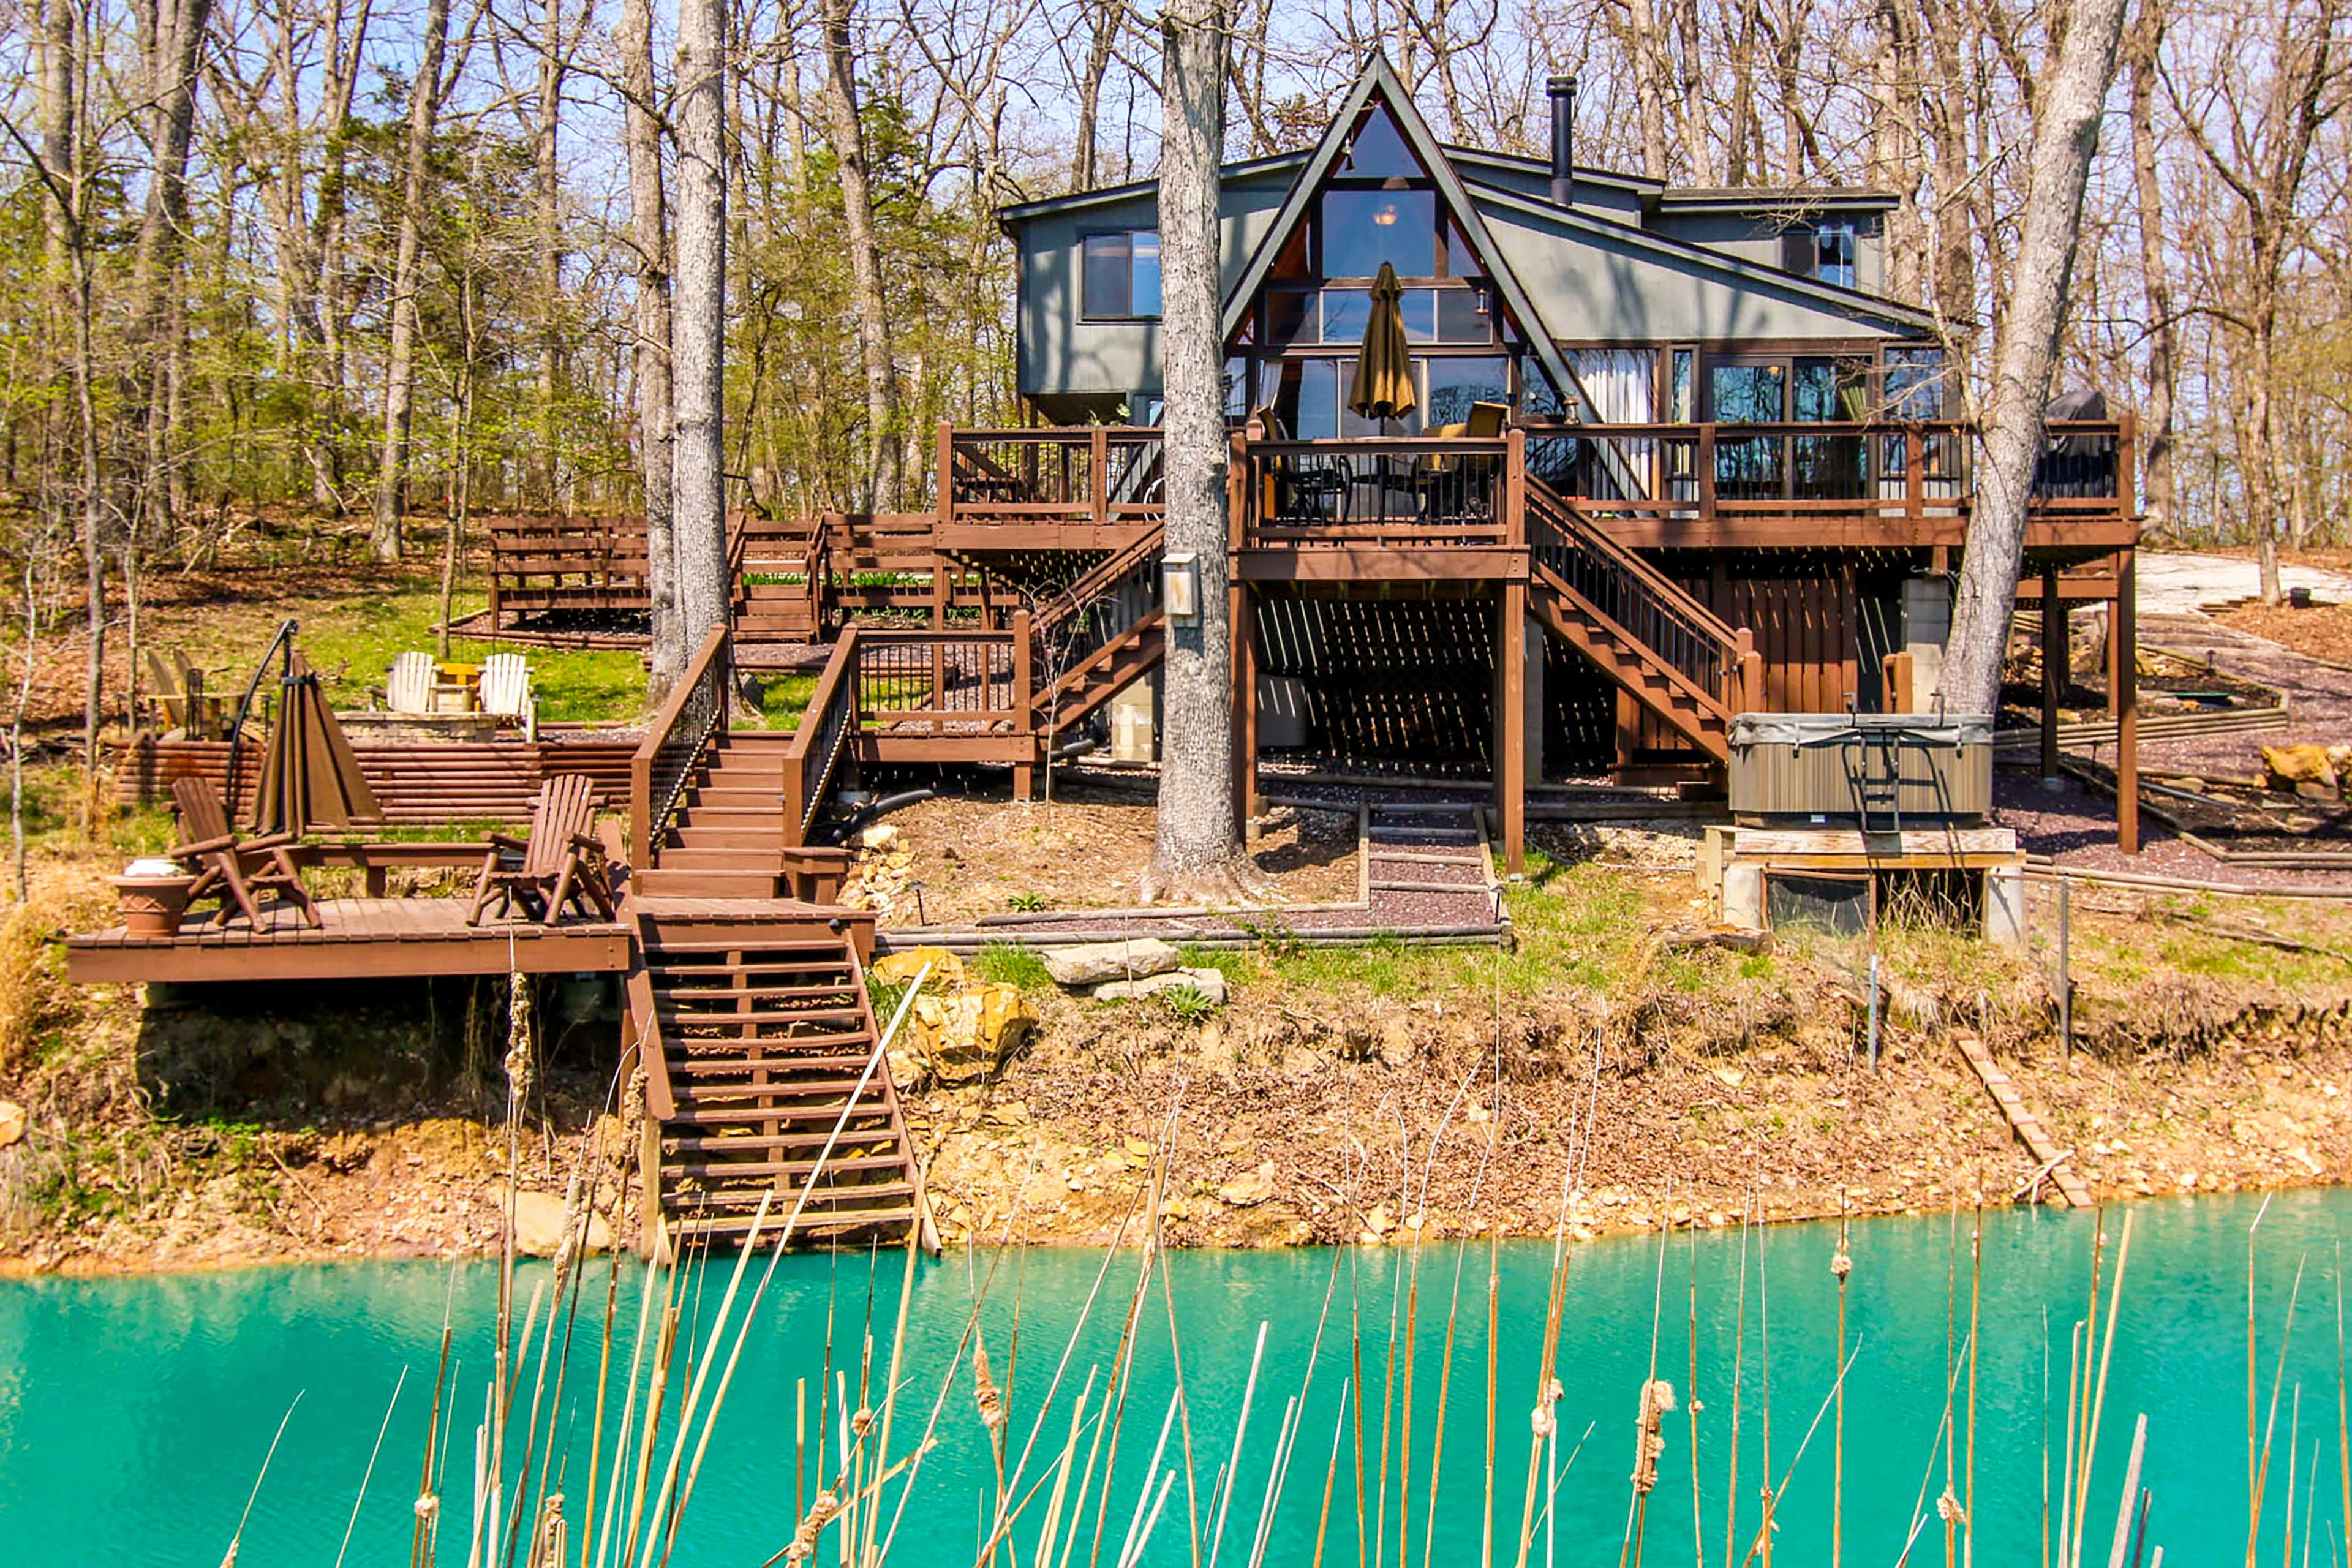 Find your paradise in Innsbrook at this cozy cabin by the lake!